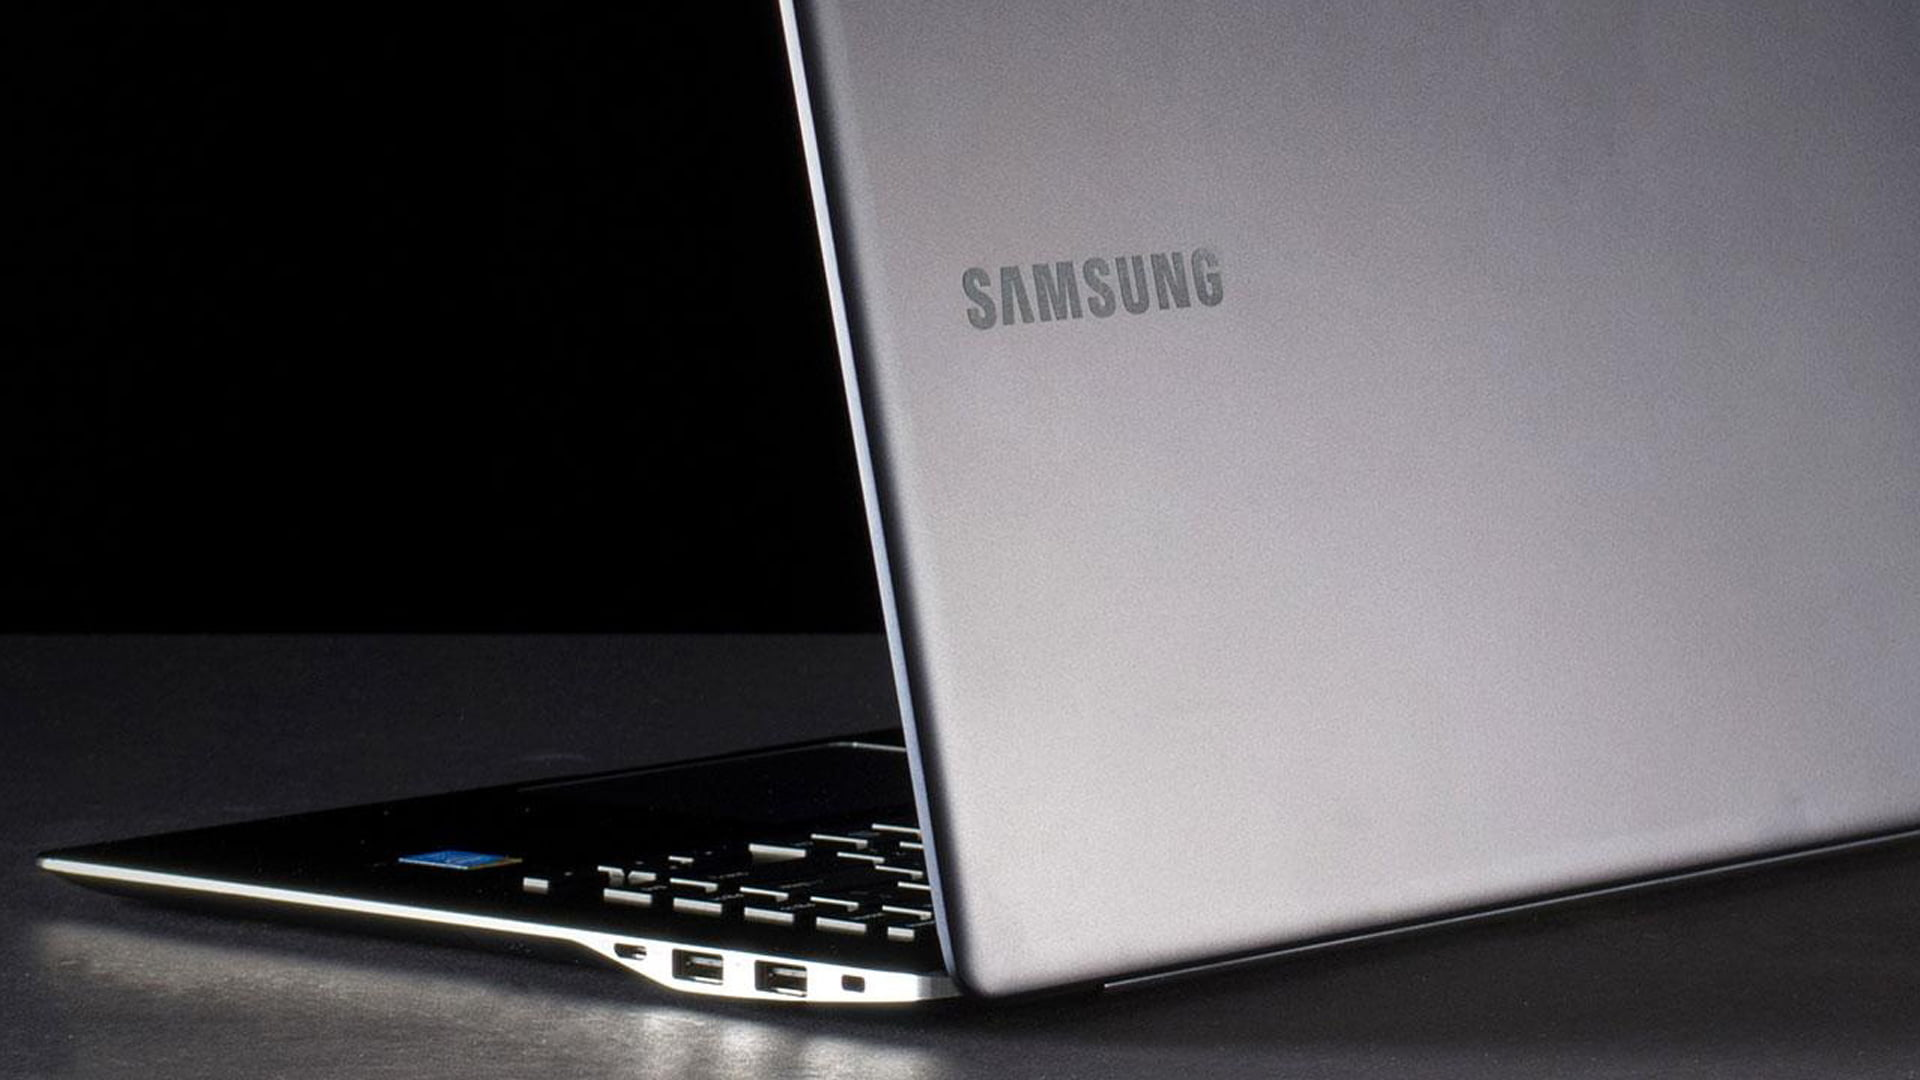 Samsung ATIV Book 9 con Windows 7